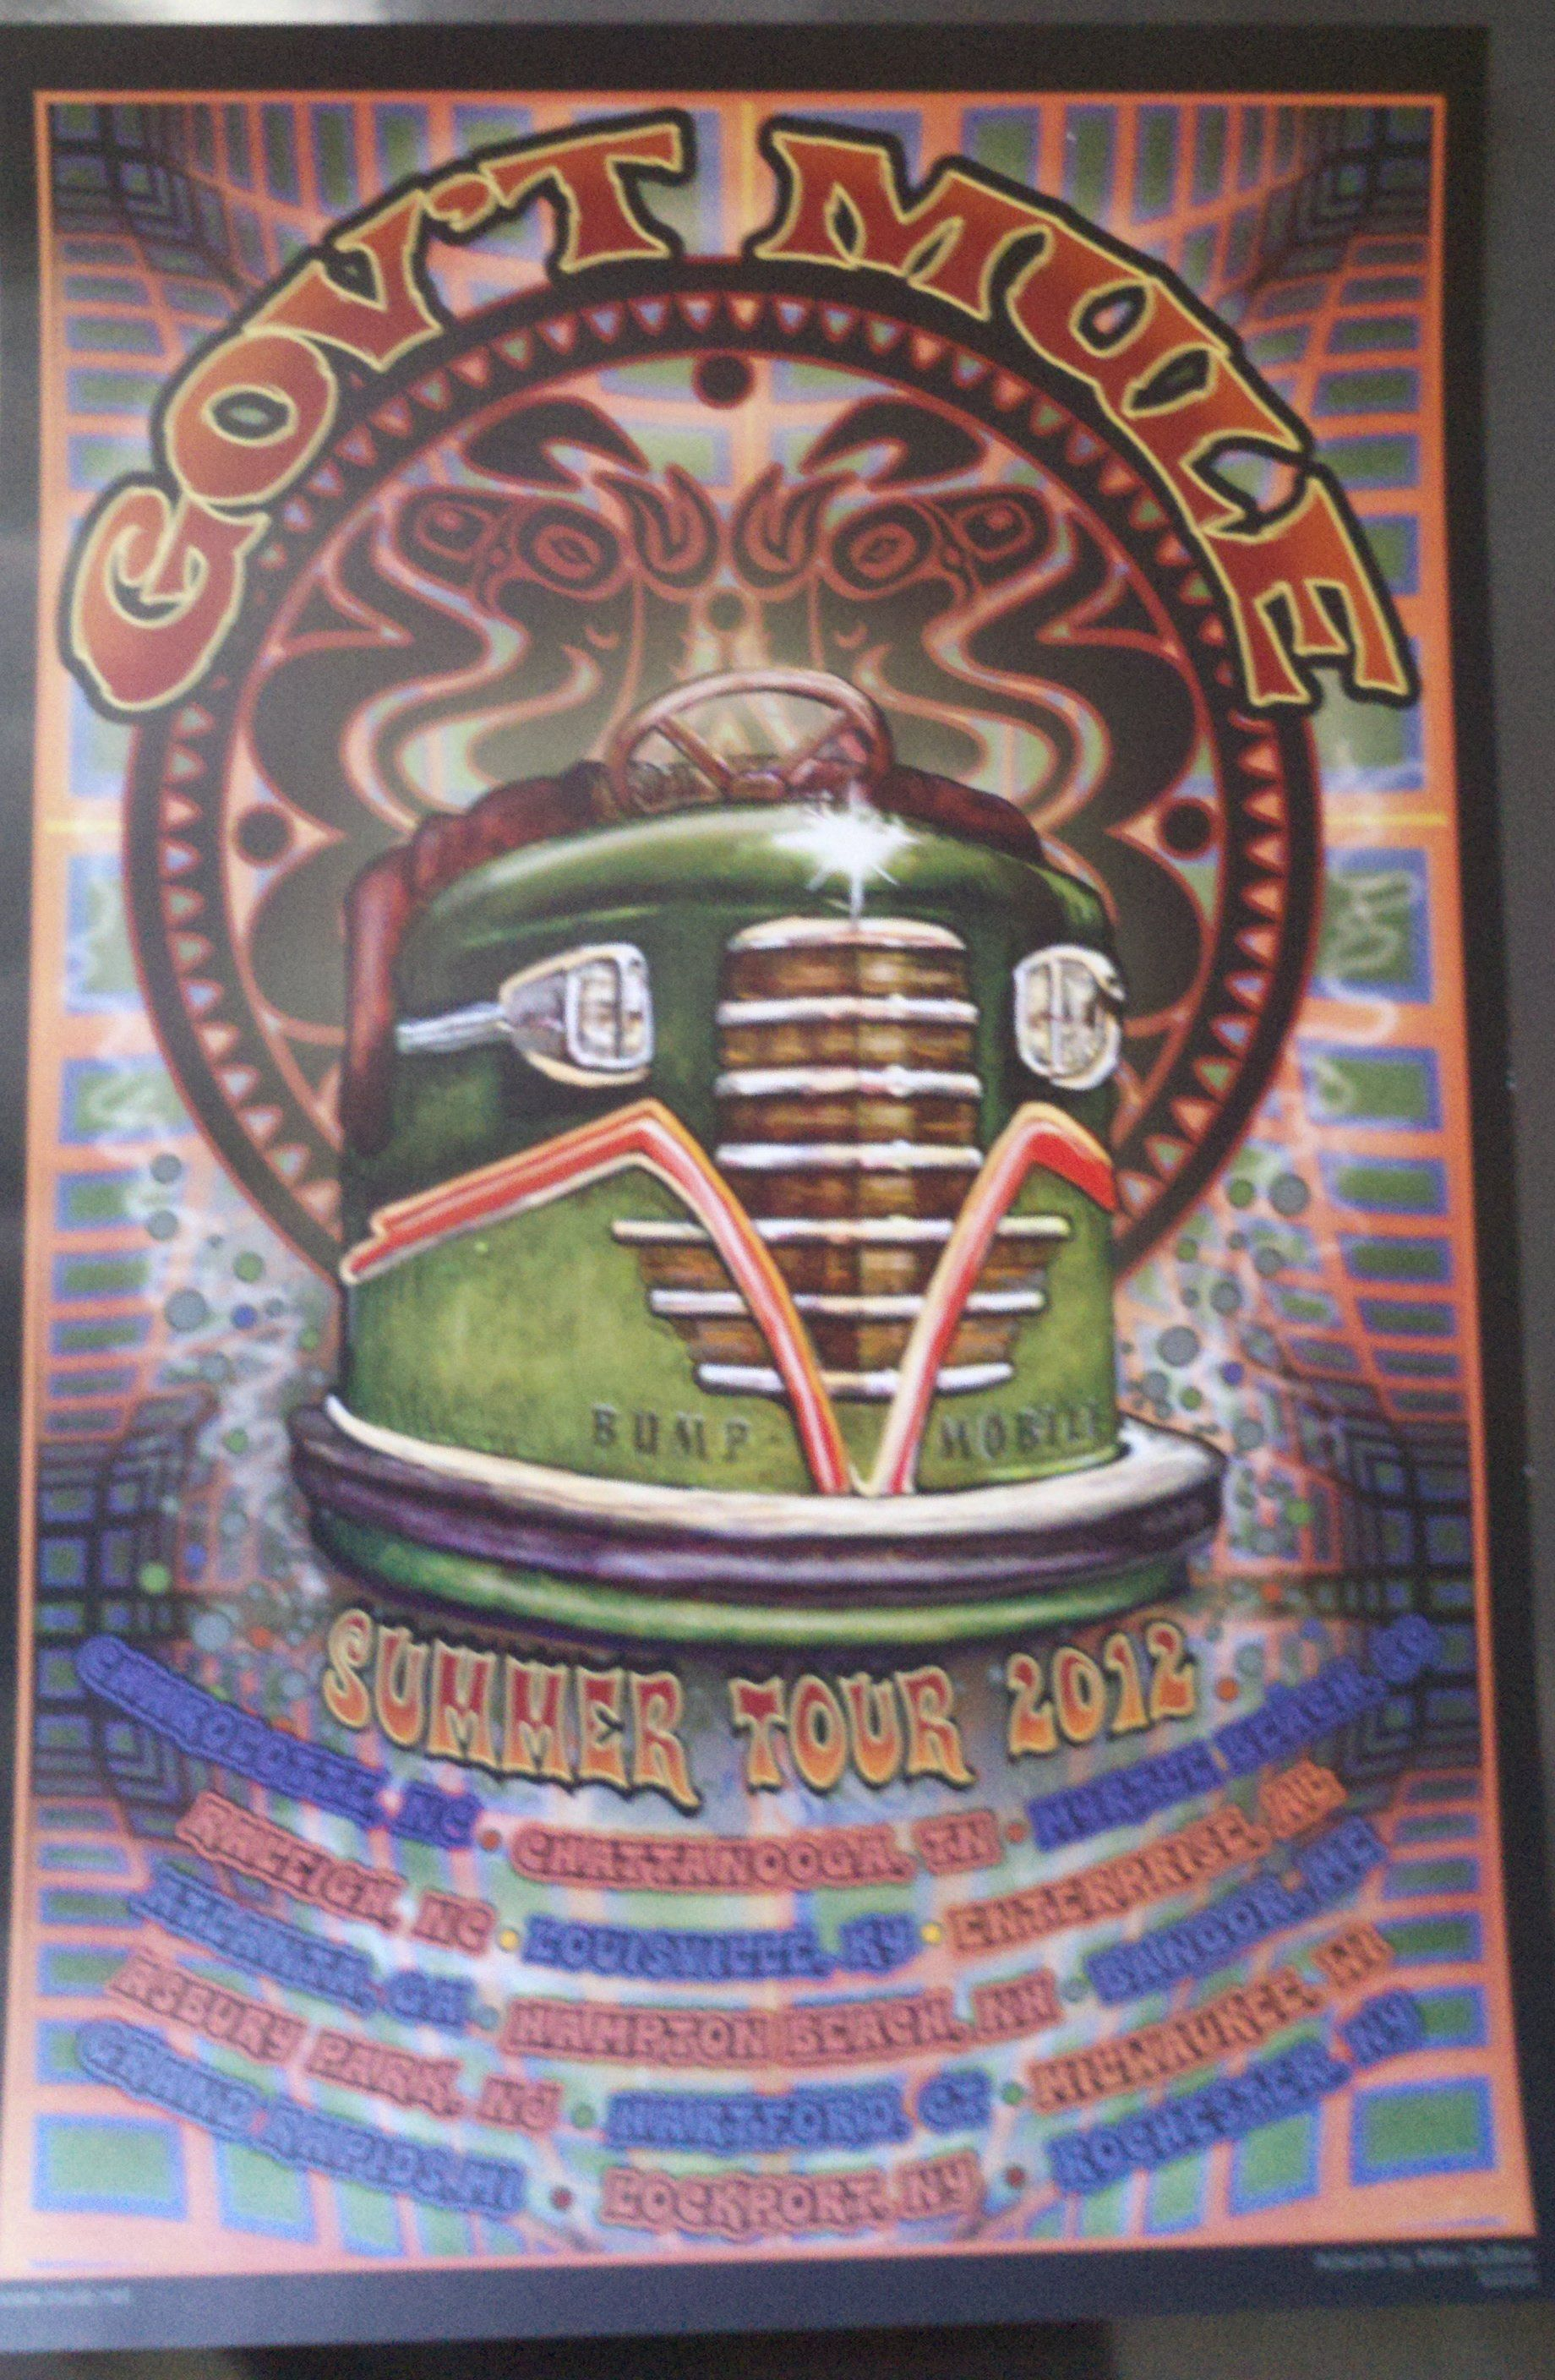 Gov't Mule's Summer 2012 NA tour poster.